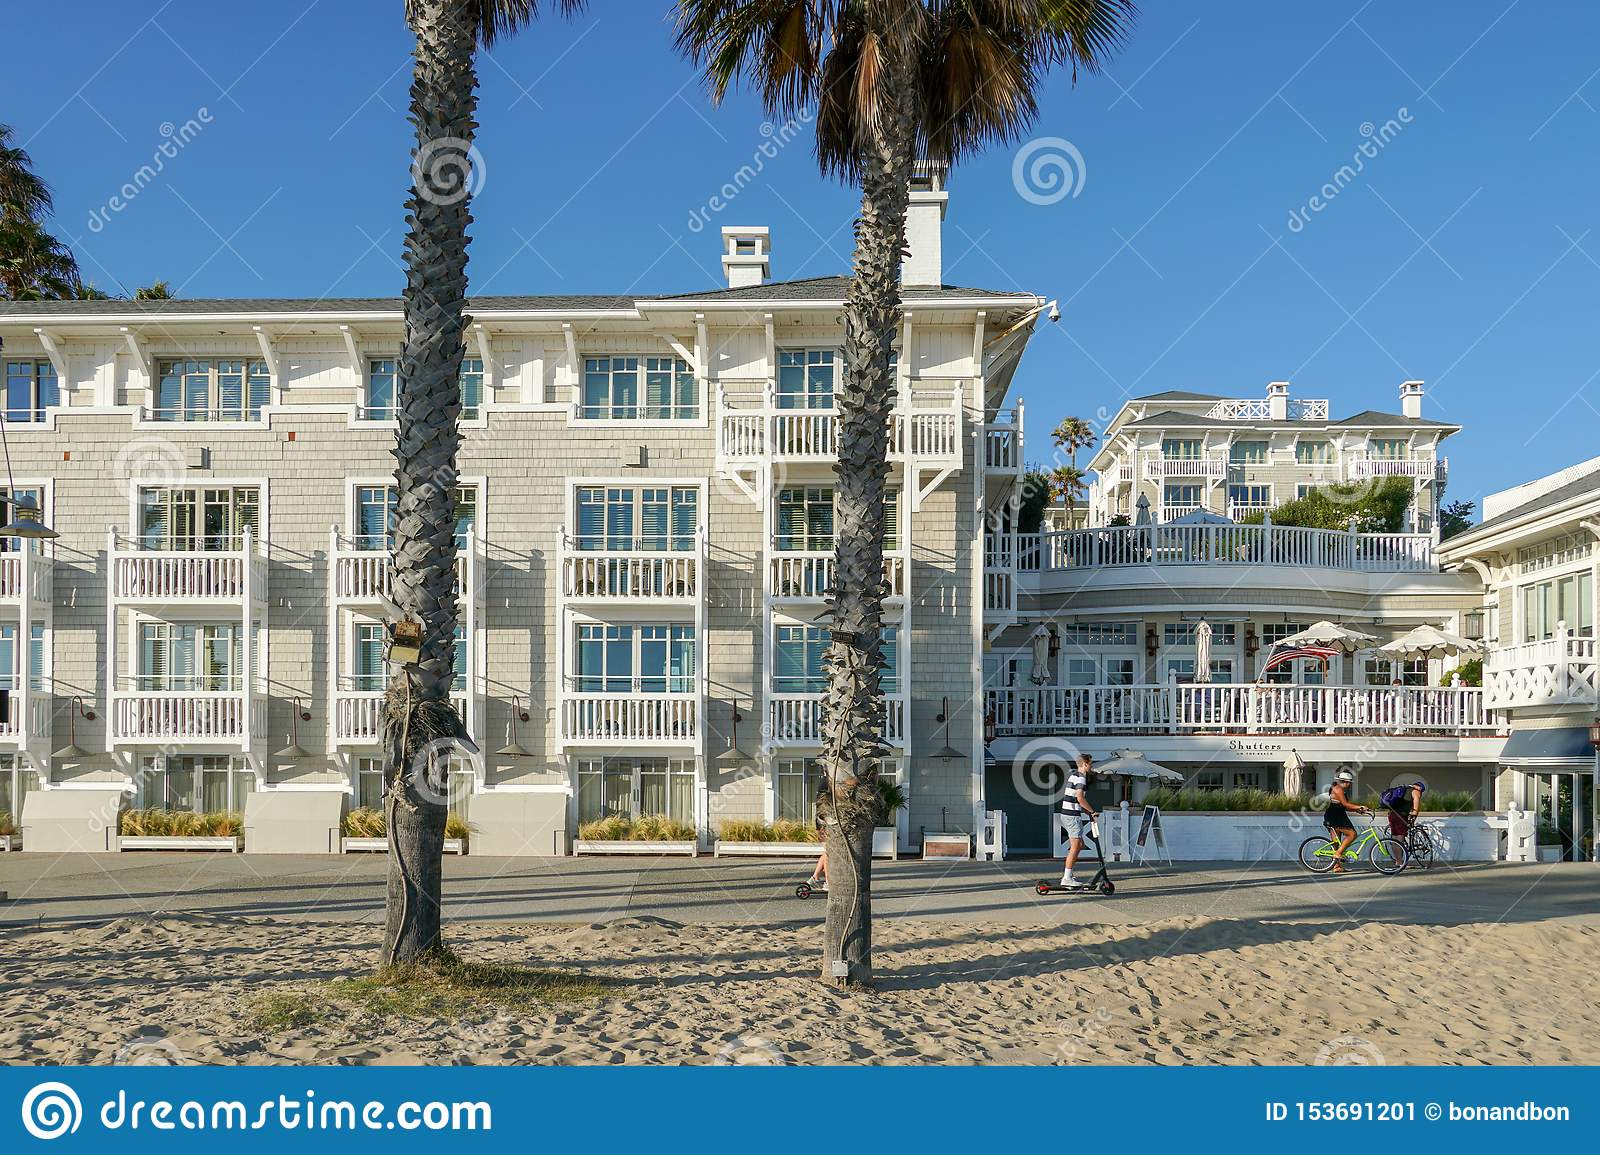 This is a very nice restaurant overlooking the beach. Shutters On The Beach Hotel On Santa Monica Editorial Photo Image Of Building Patio 153691201